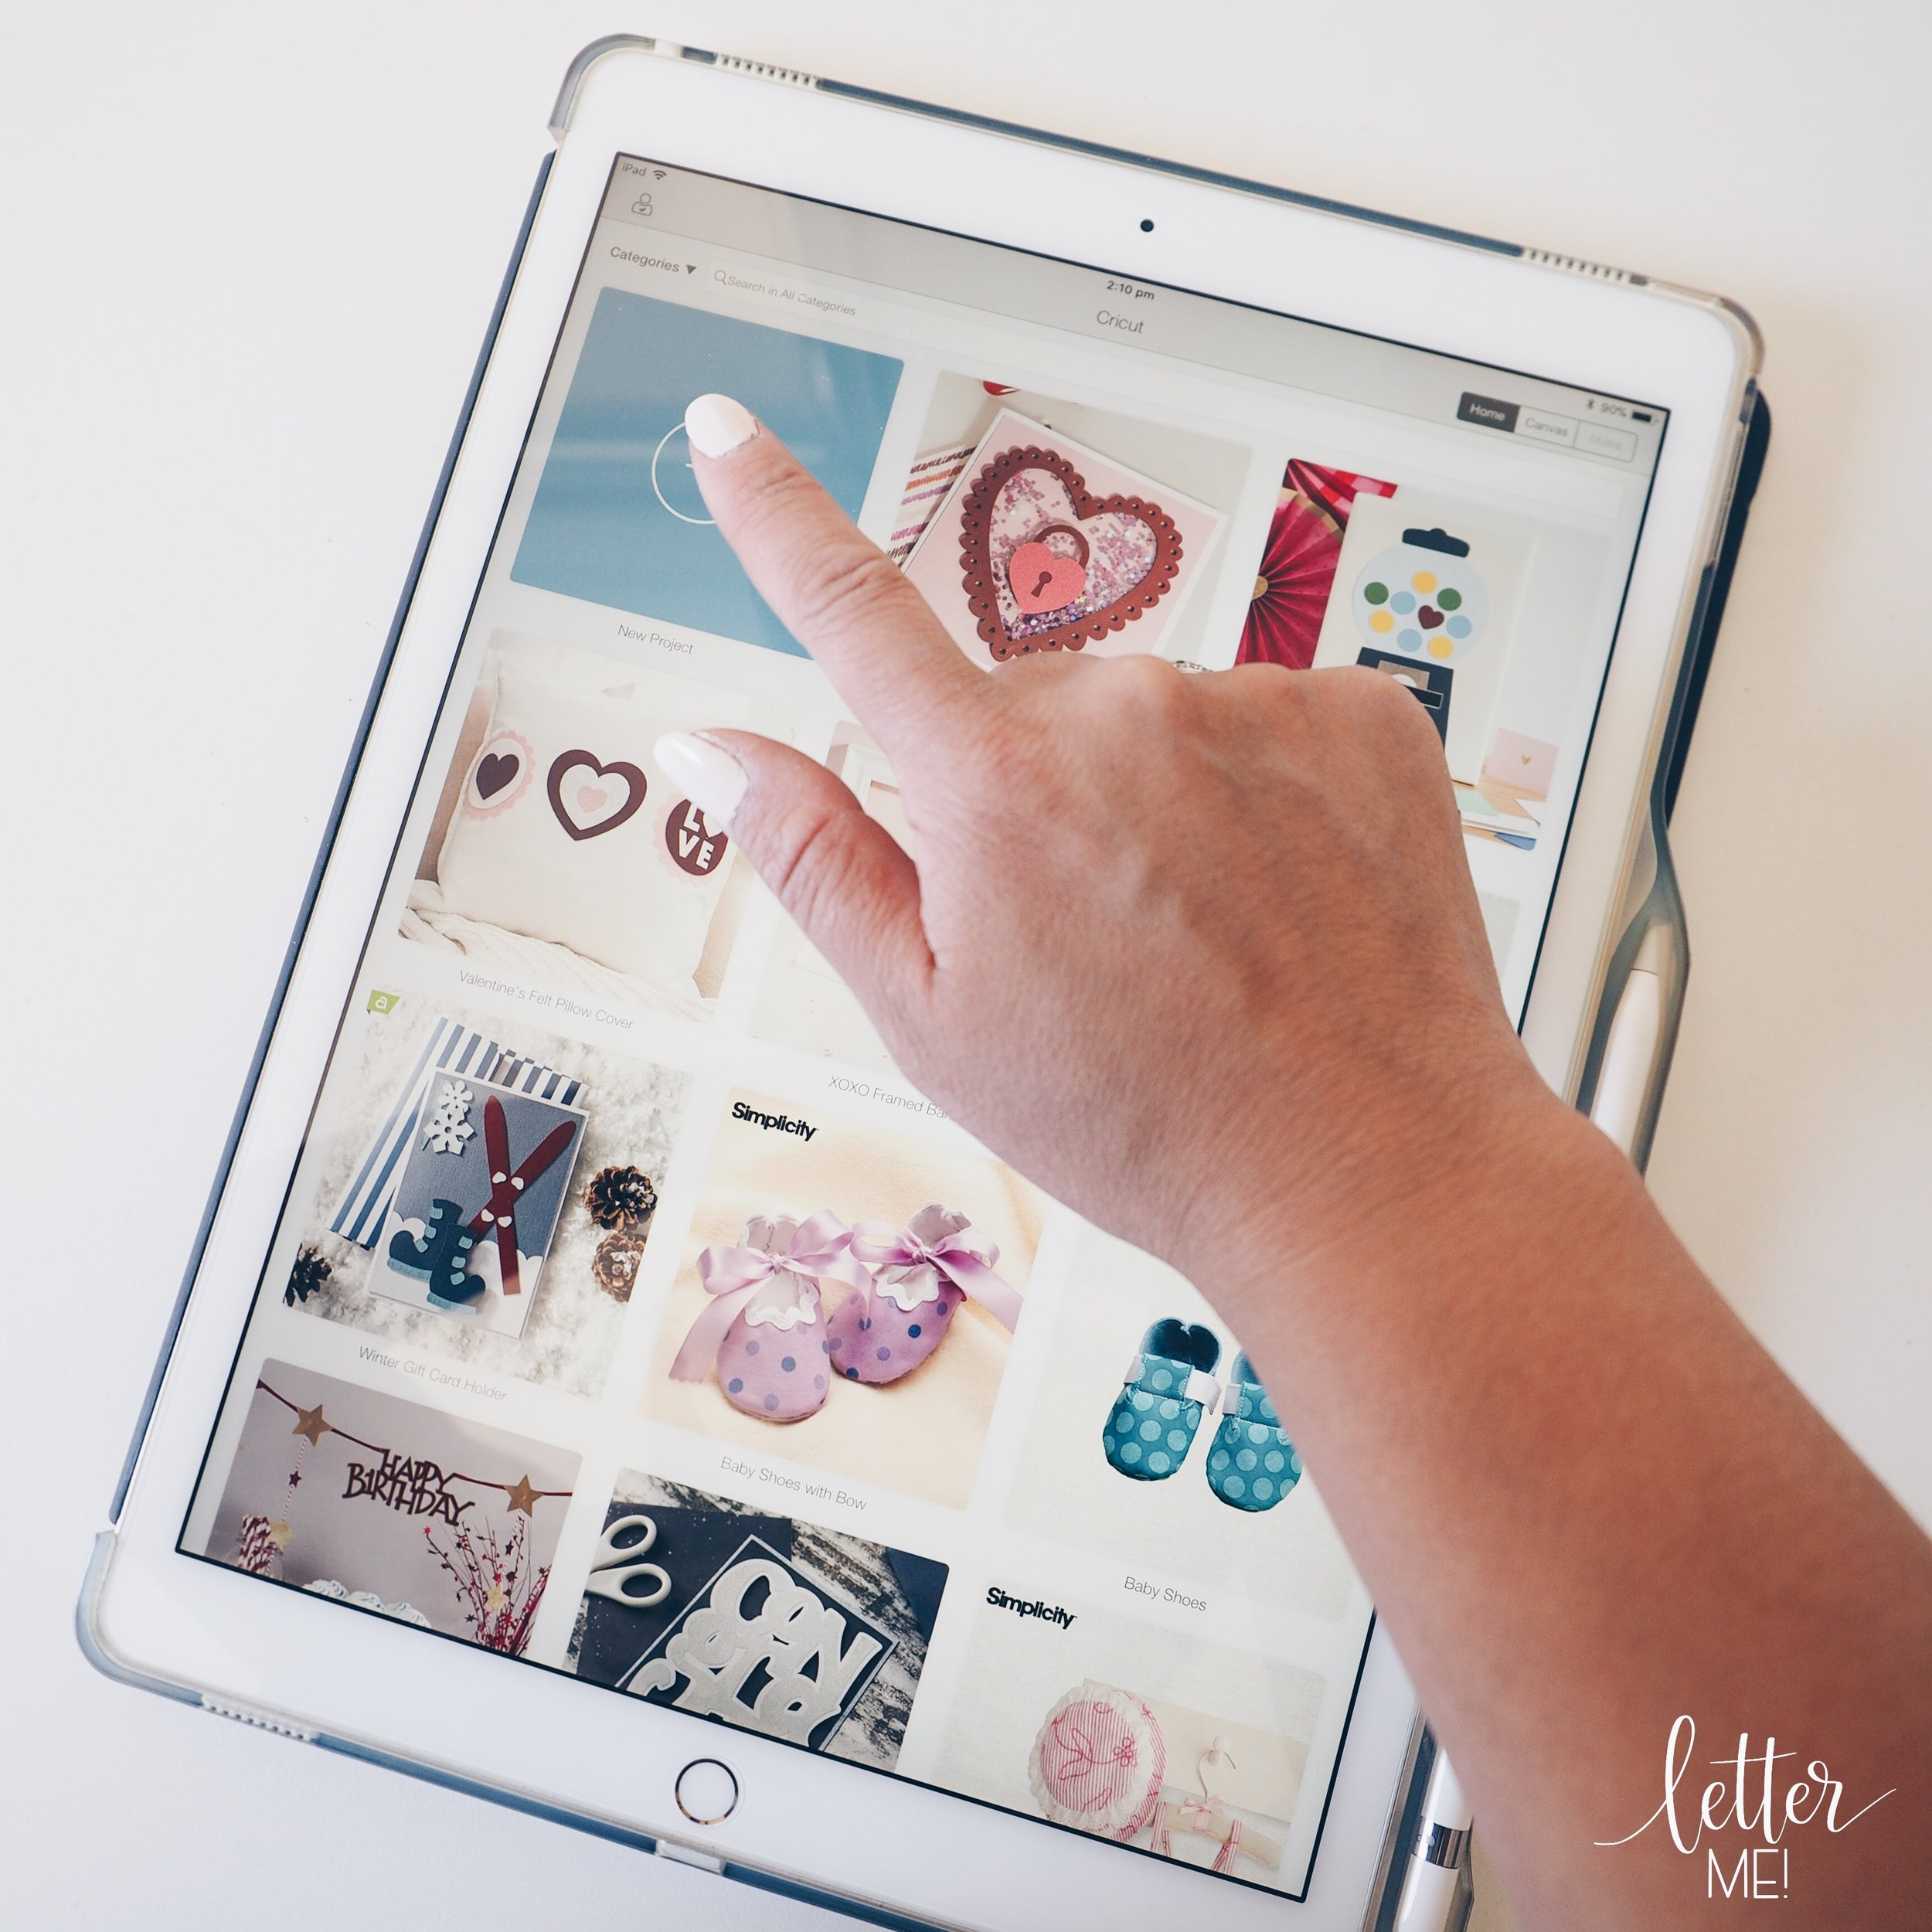 Introduction to Cricut — Letter Me!